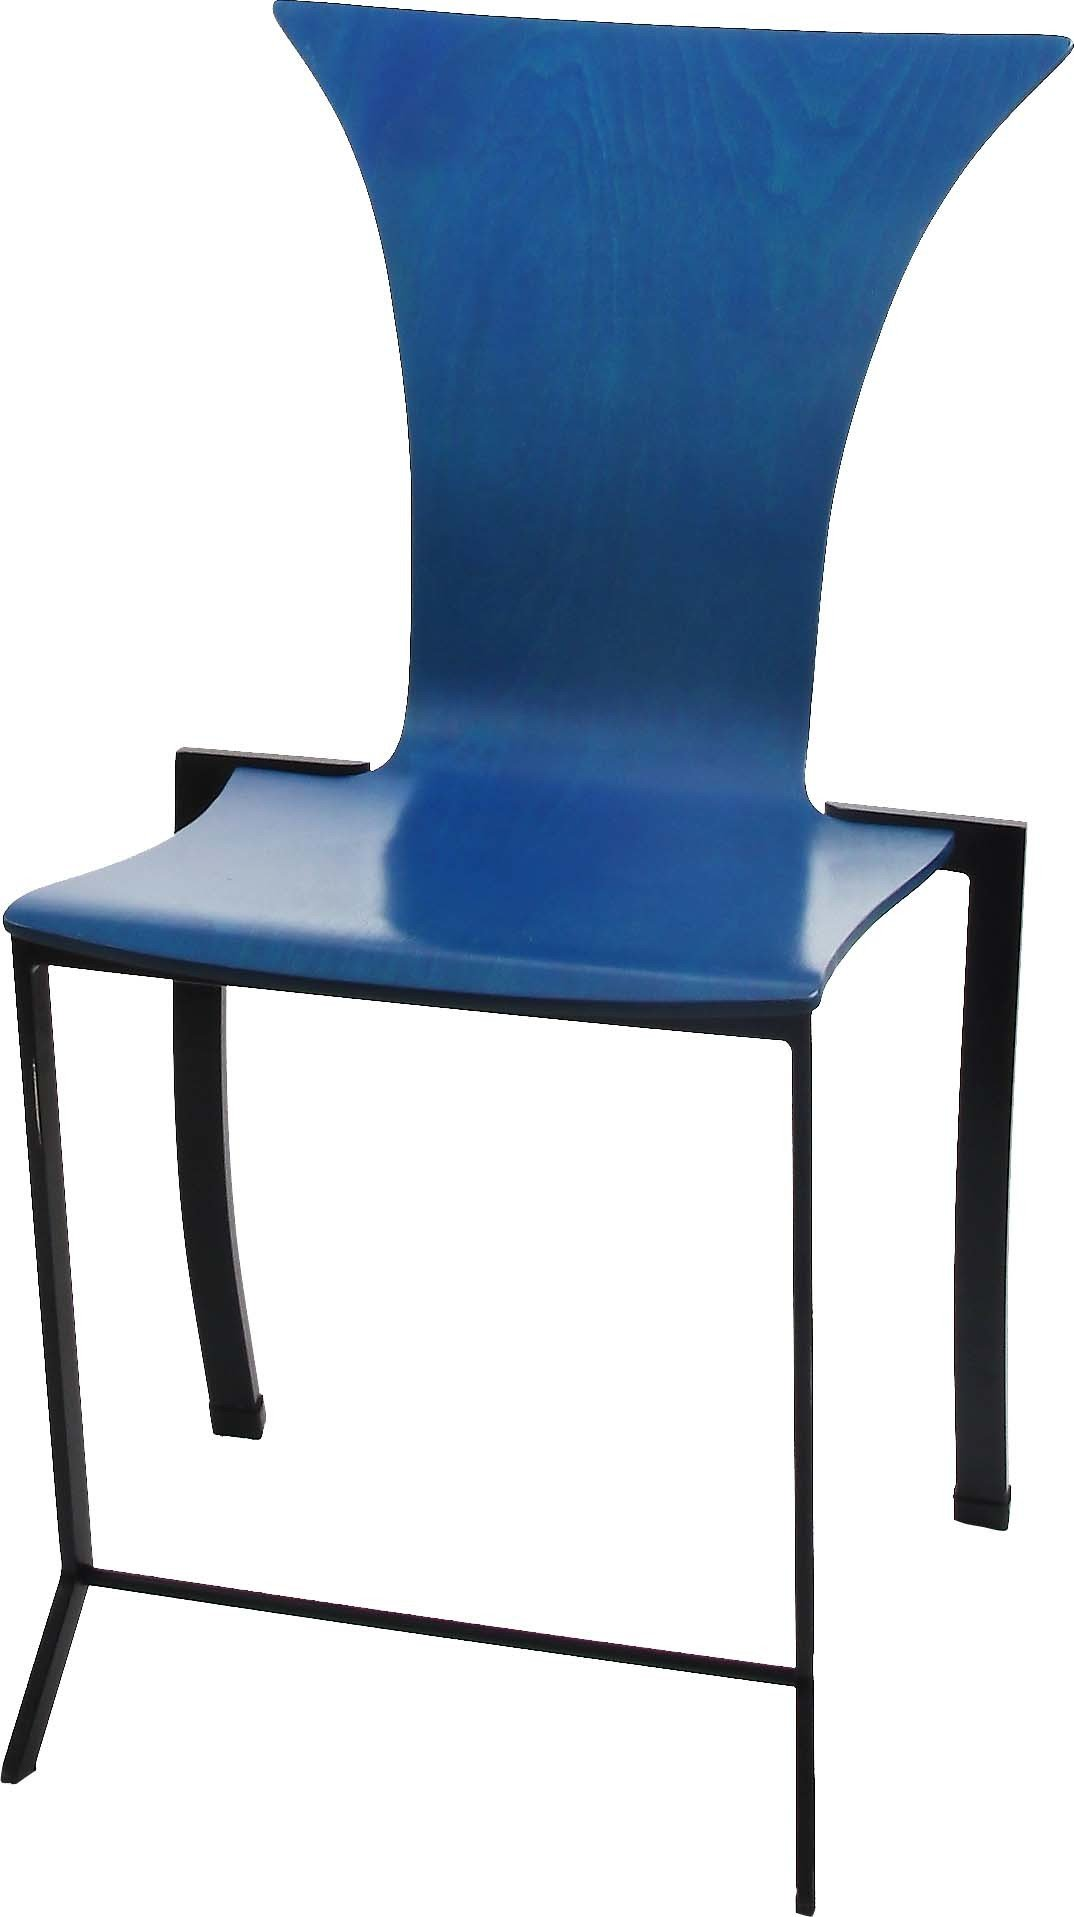 Blue Chair, Germany, 1990s